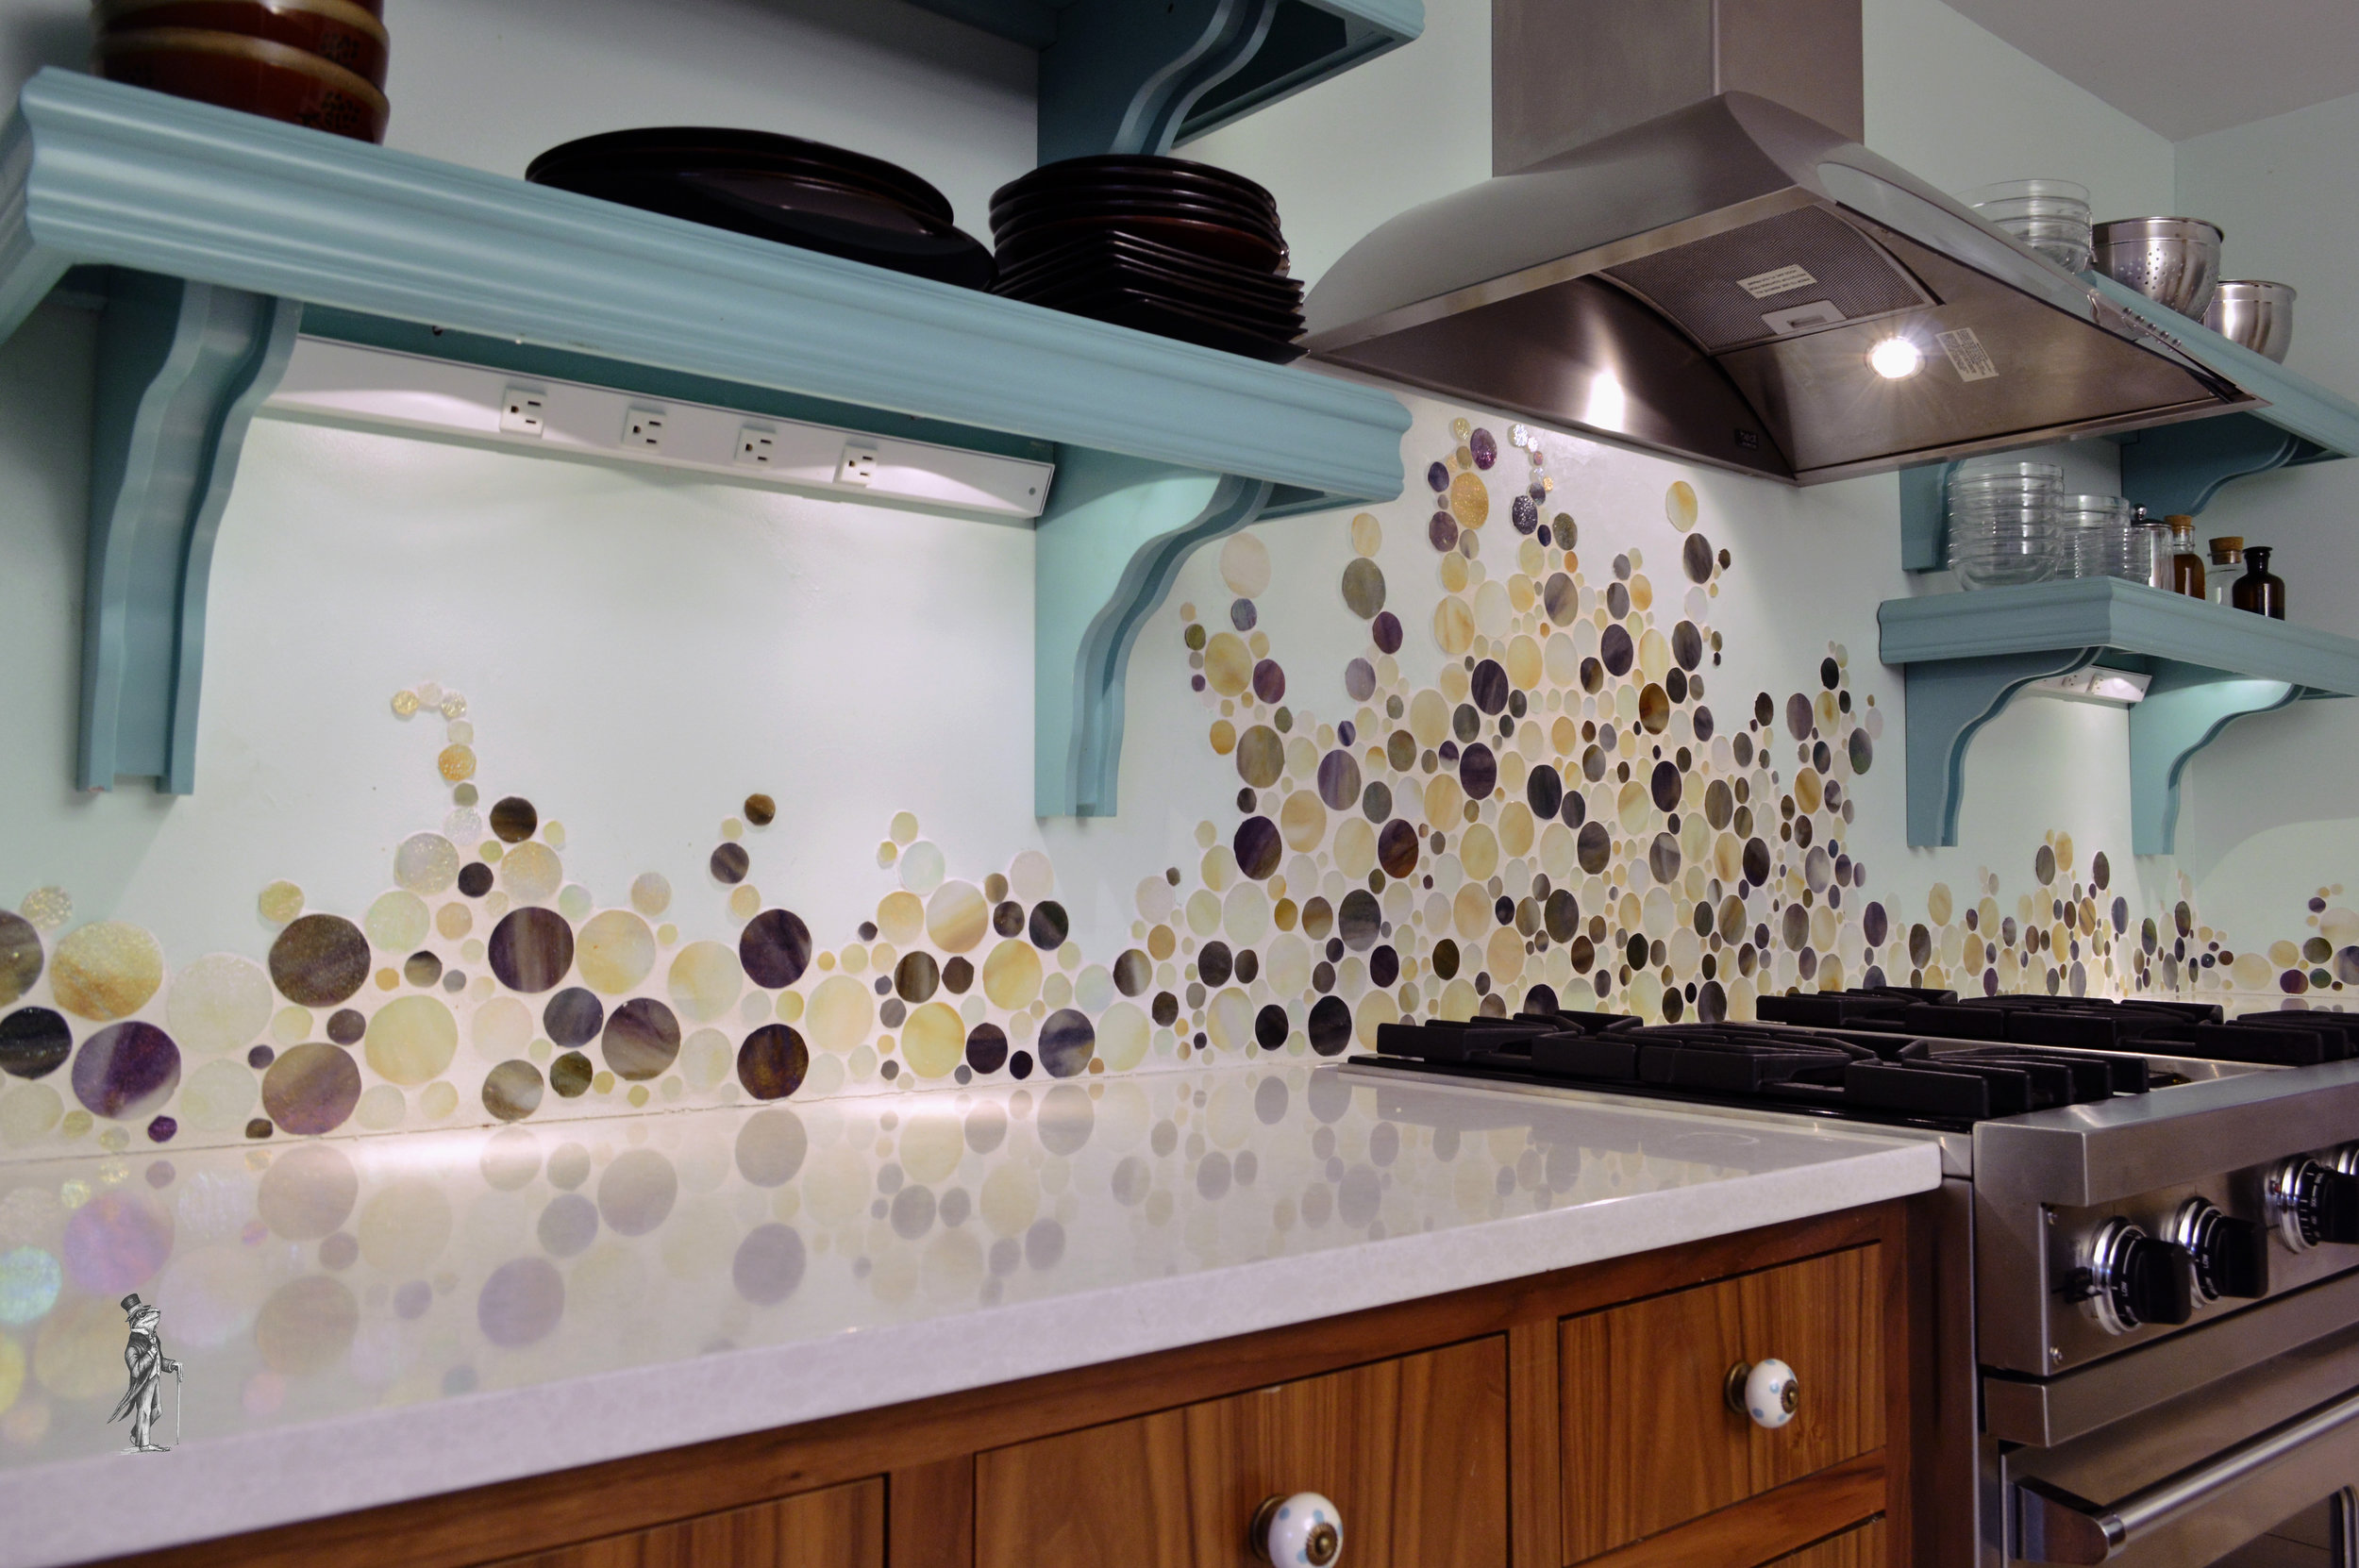 1 Mid Century Backsplash3.jpg